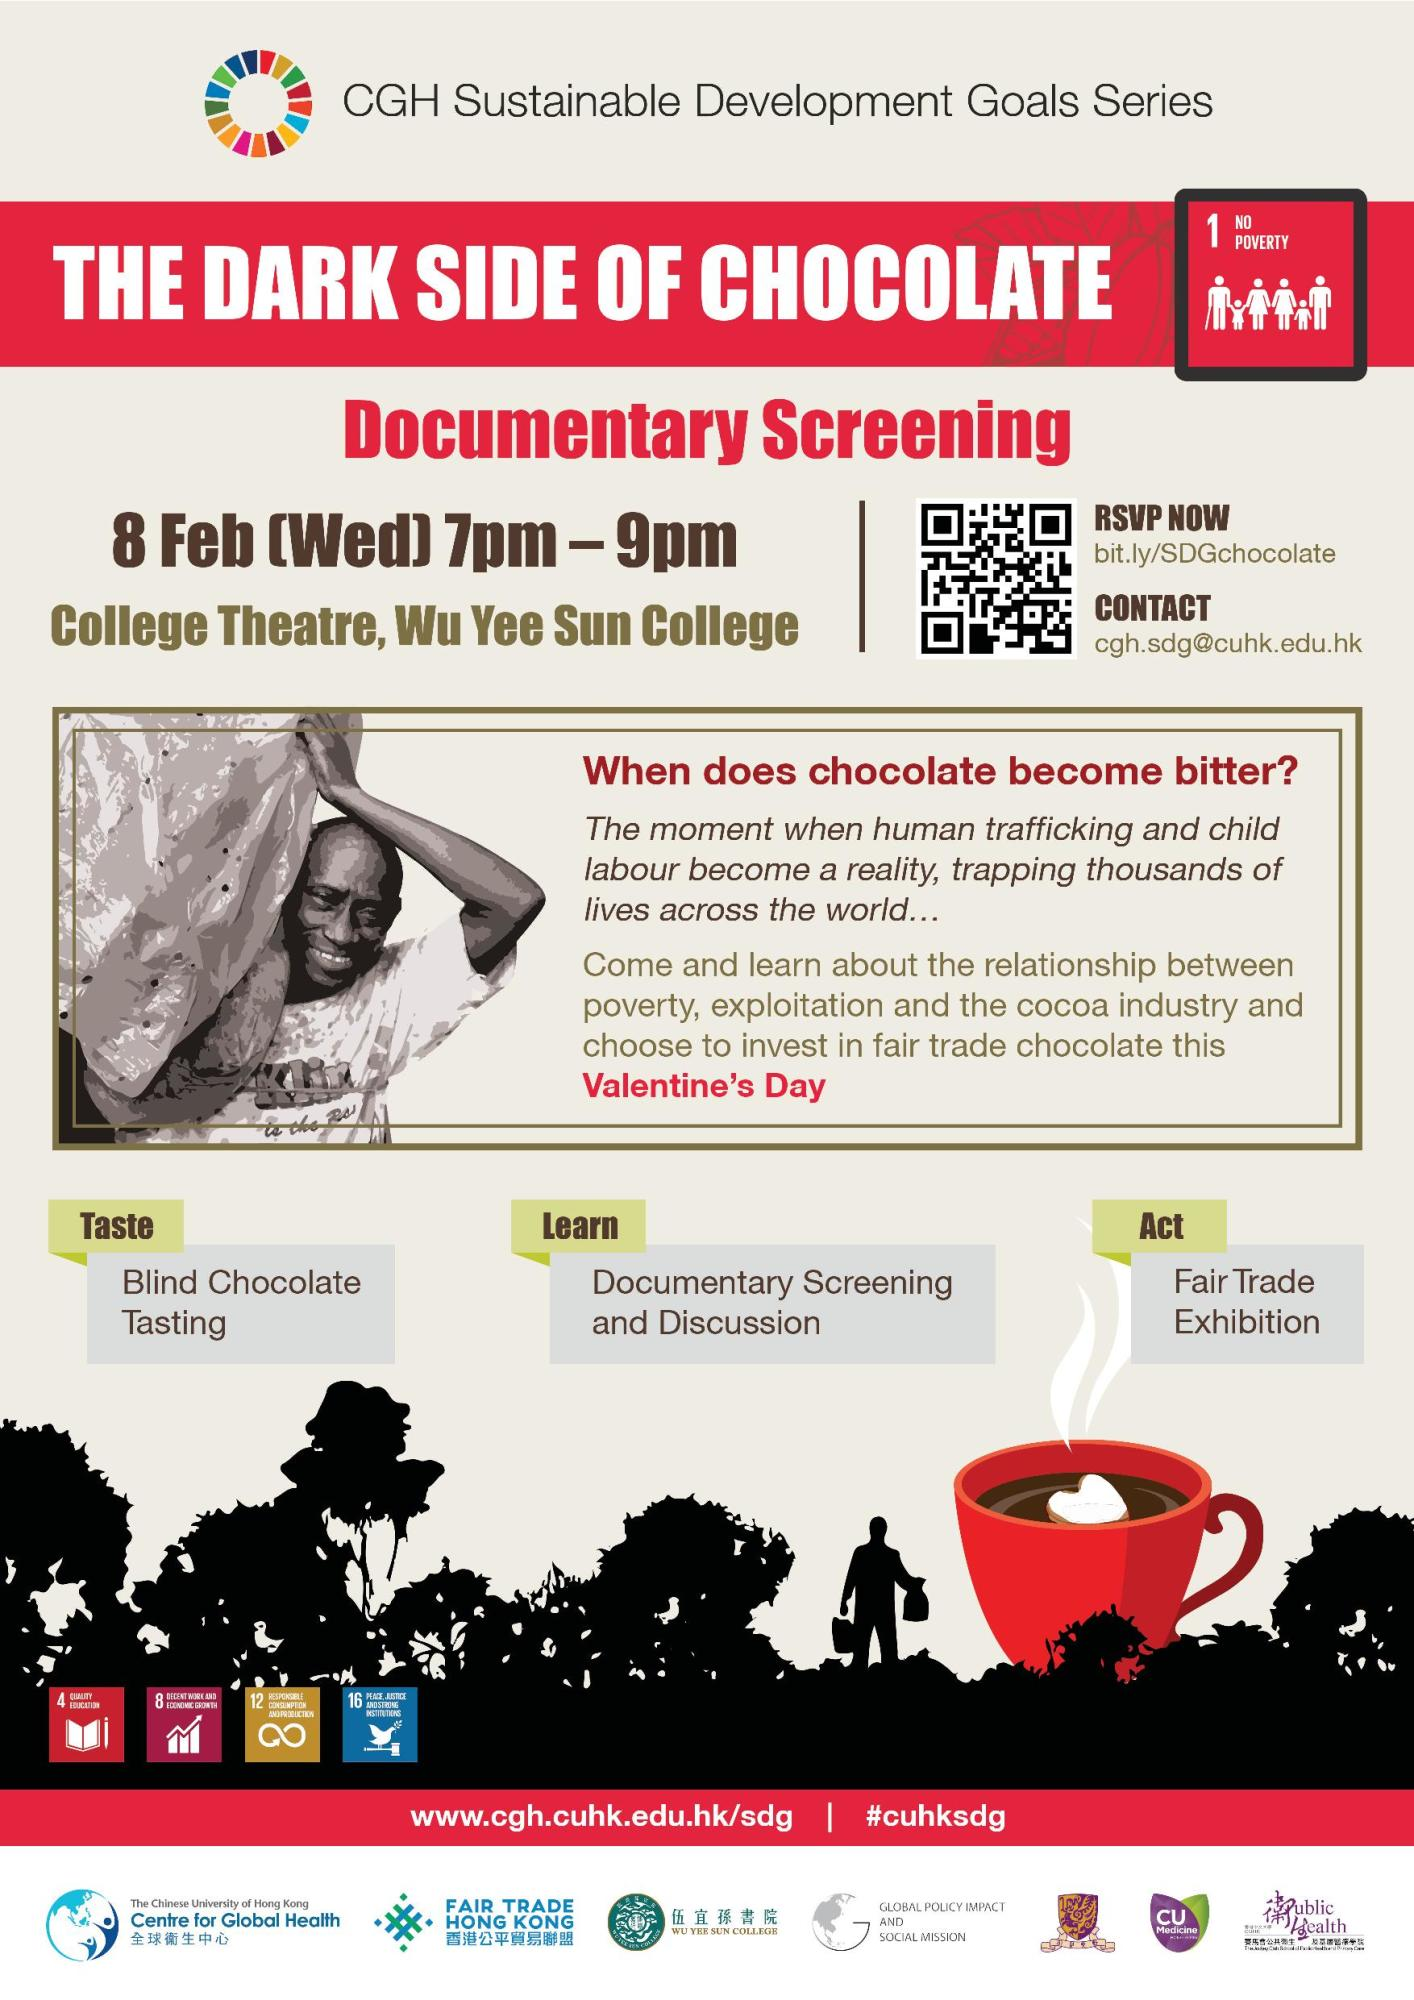 dark-side-of-chocolate-documentary-screening